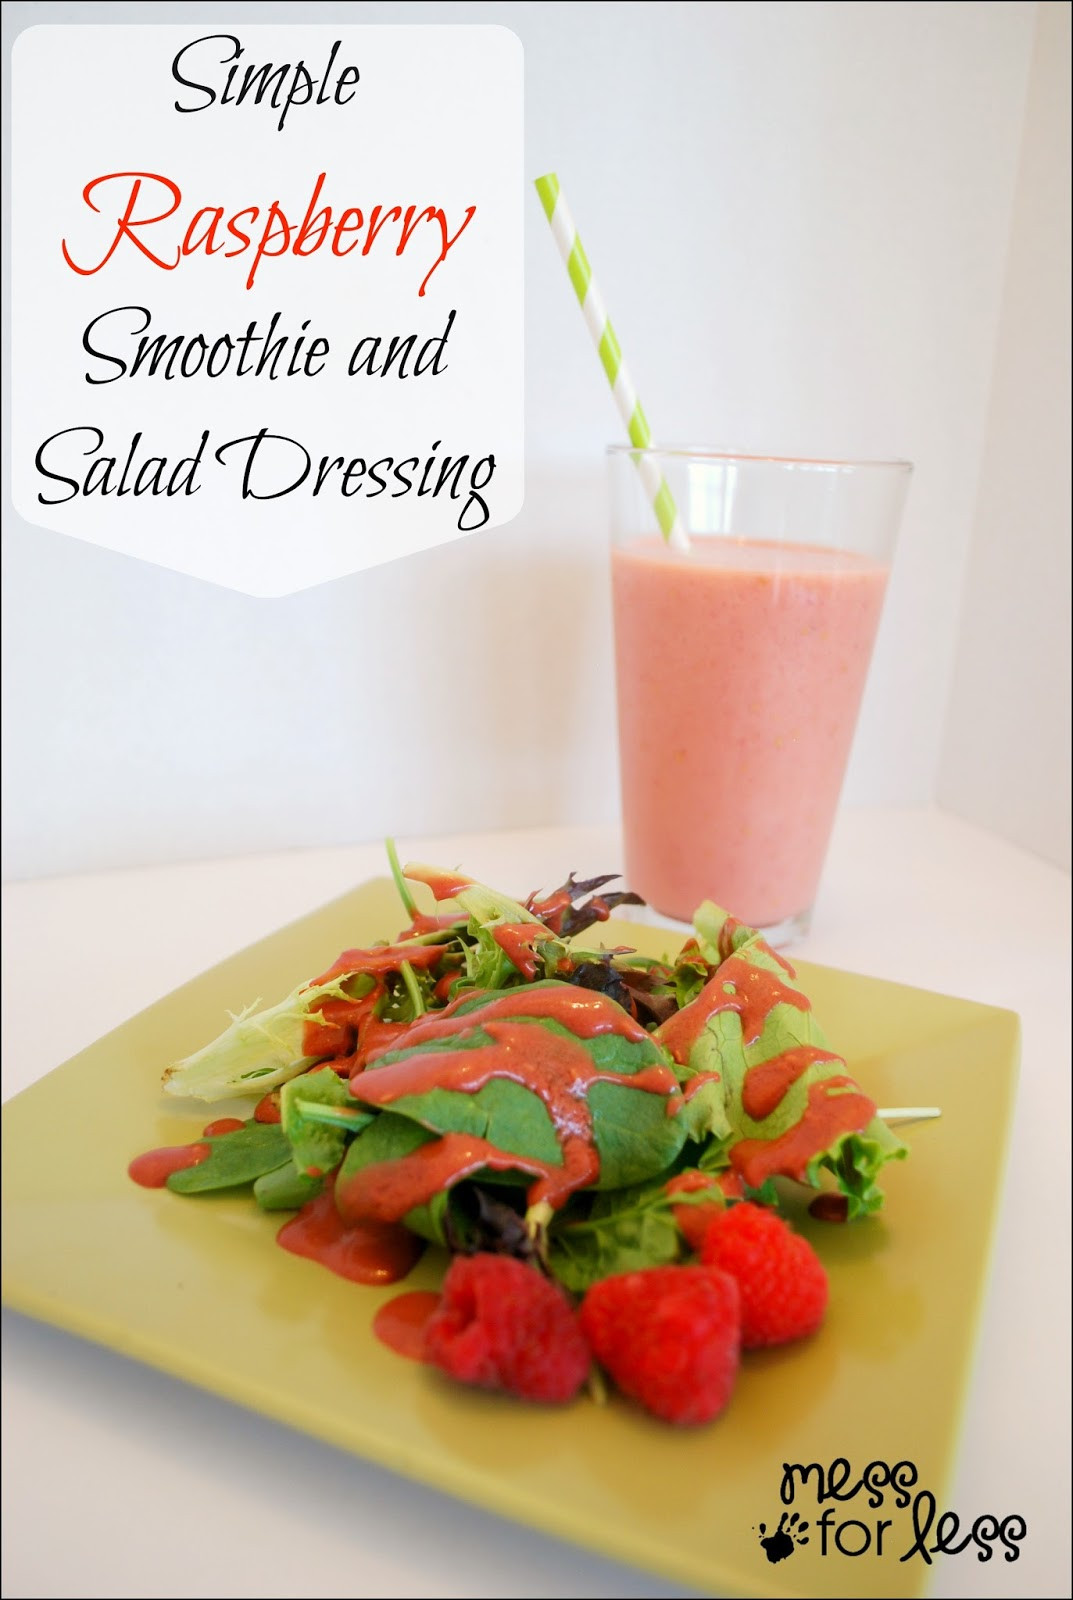 Heart Healthy Salad Dressing Recipes  Recipes for Heart Health Raspberry Smoothie and